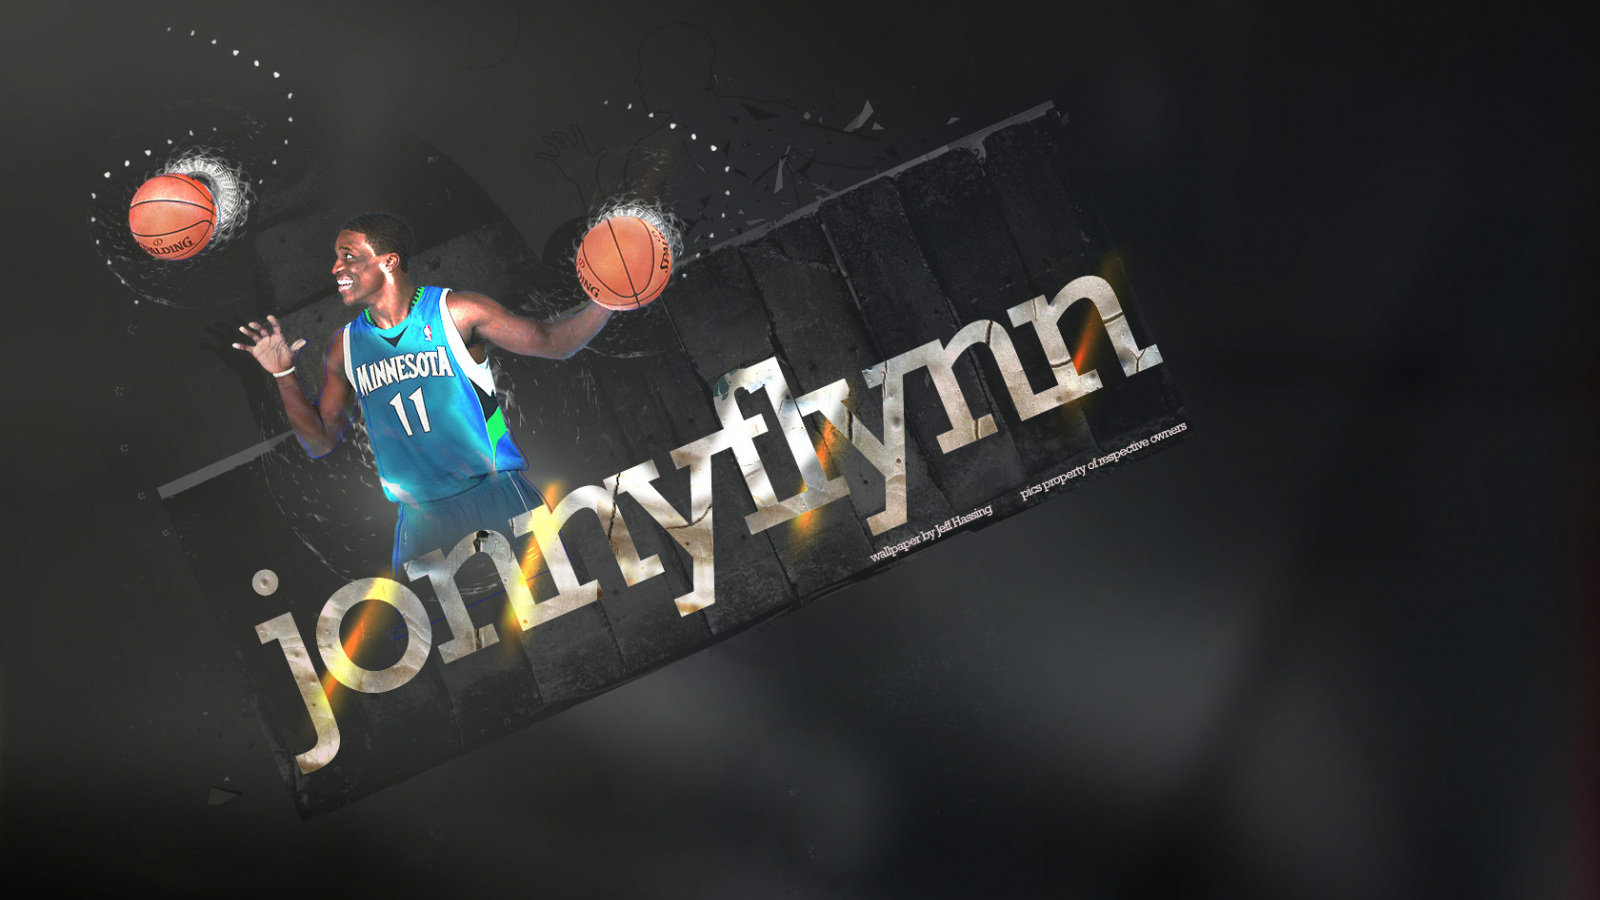 Free Download Jonny Flynn Basketball Wallpapers 1680x1050